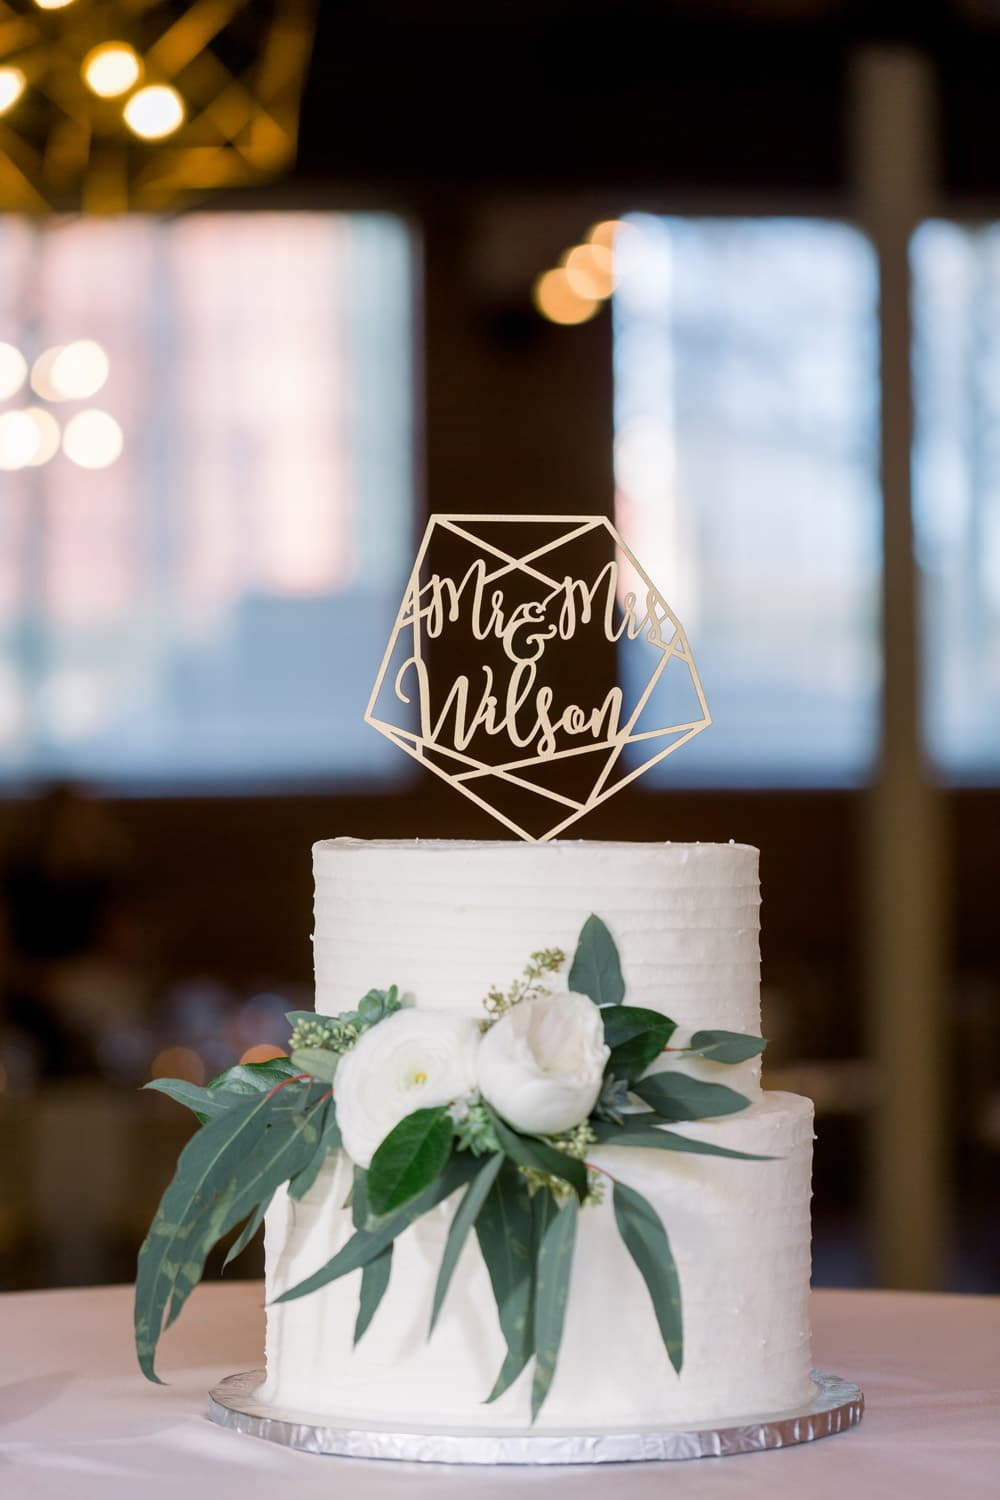 Geometric mr and mrs wedding cake topper by Thistle and Lace Designs Inc.